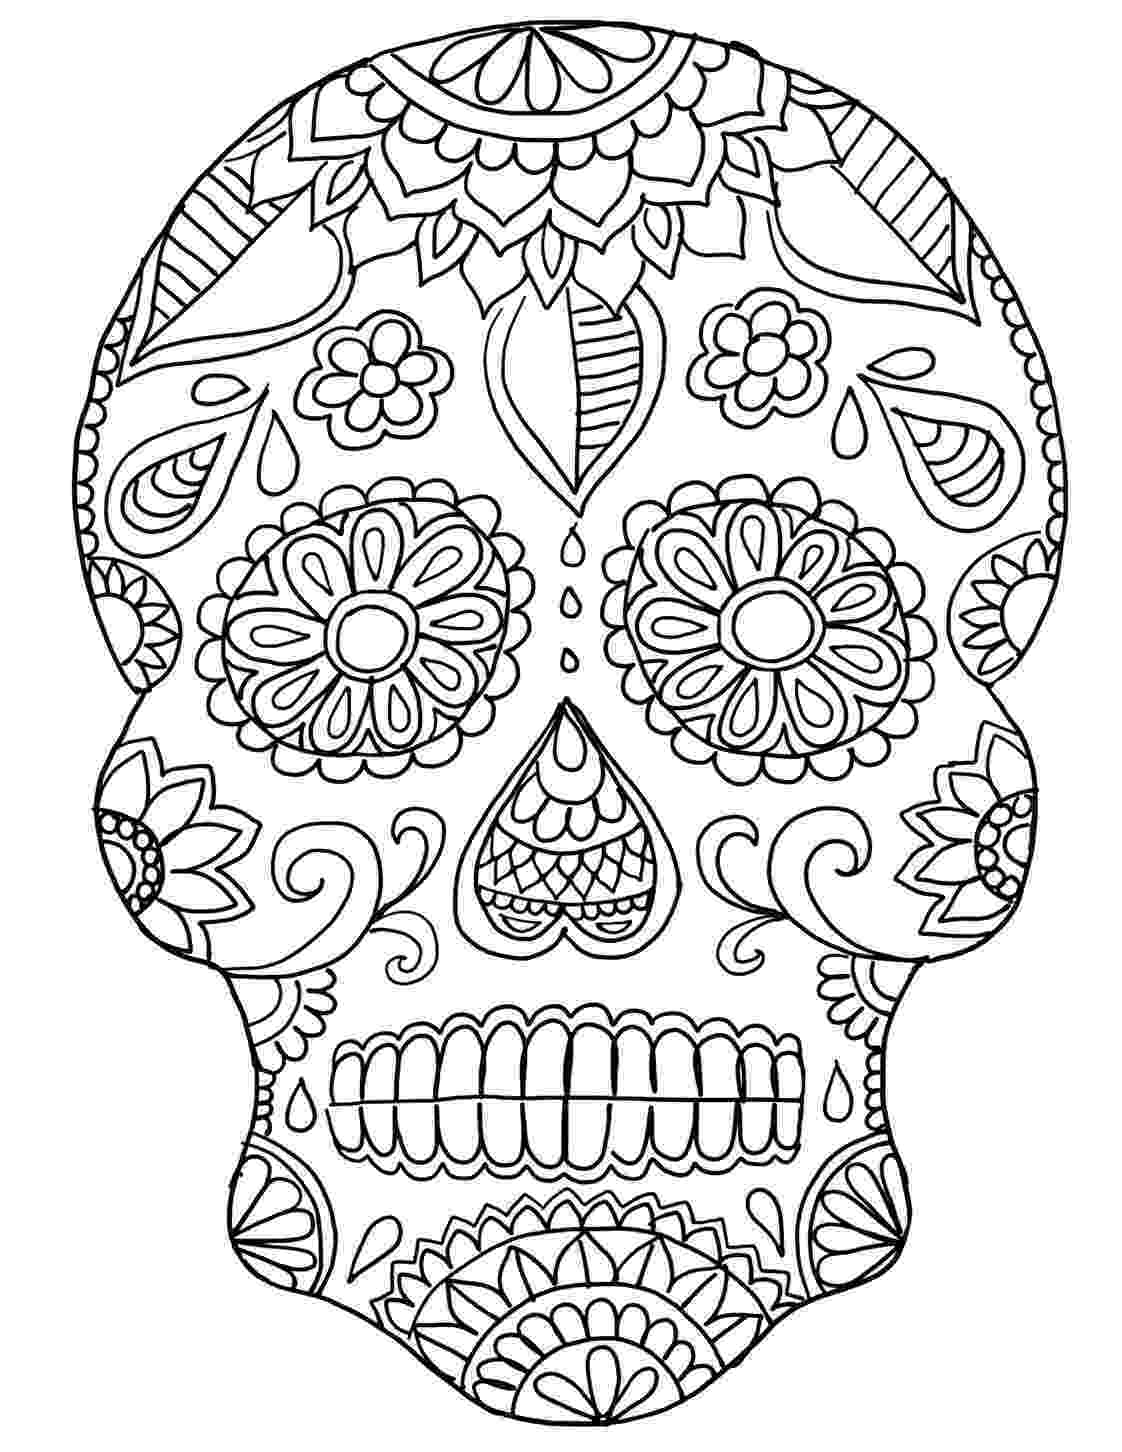 day of the dead template diy sugar skull crafts for dia de los muertos ooly day of the dead template